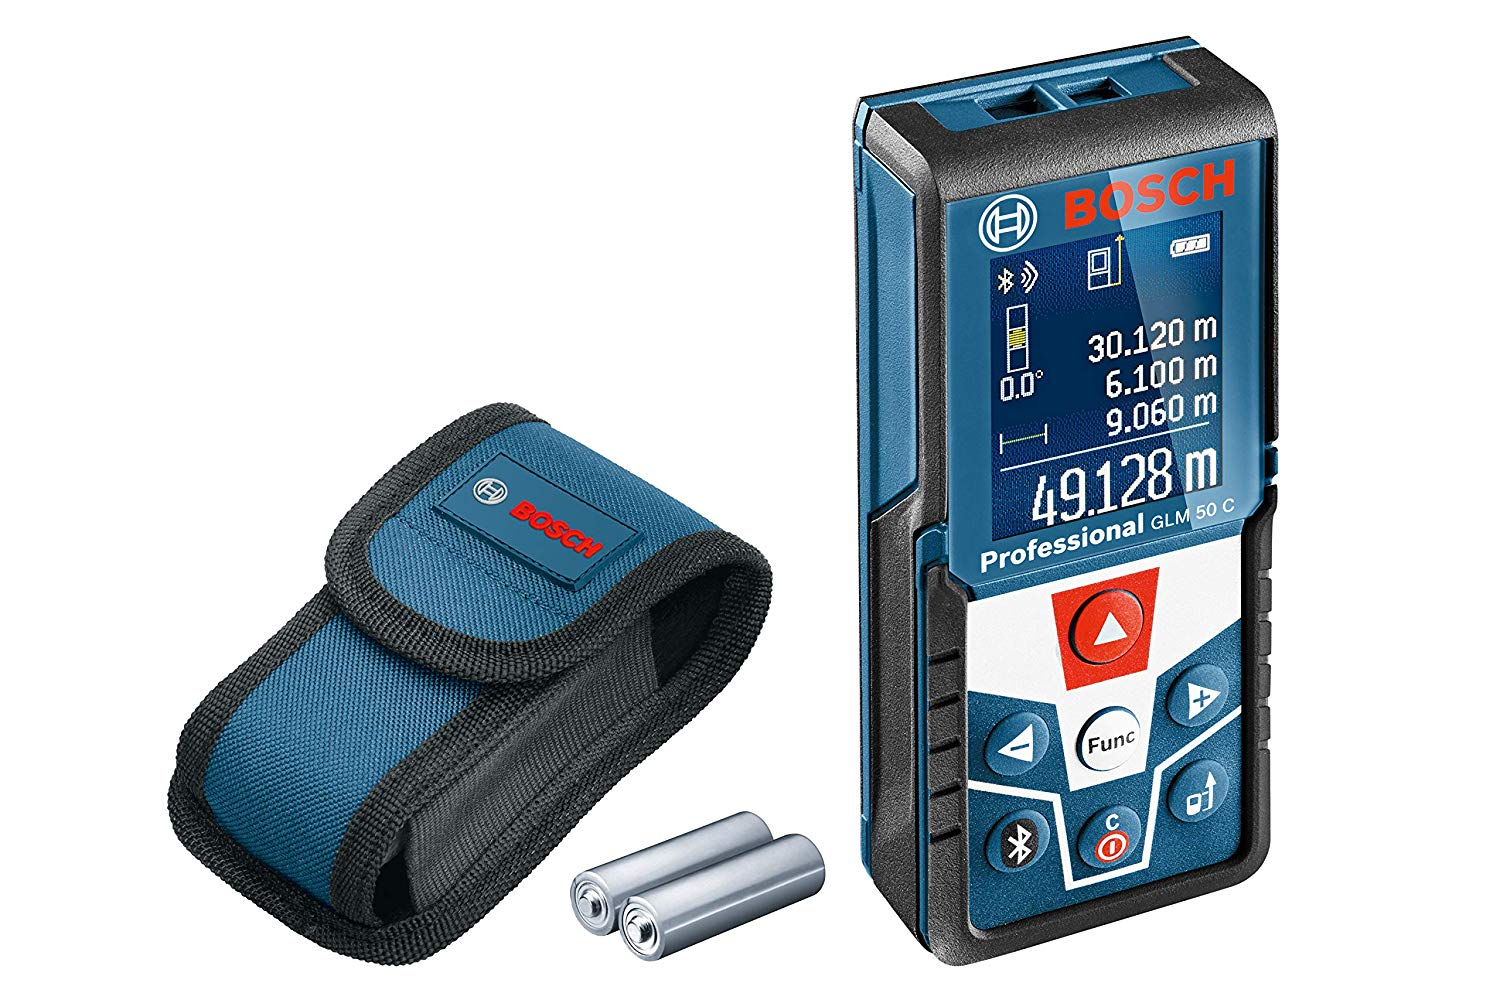 Bosch 50 C Professional Laser Measure with GLM Floorplan App, 1.5 V, Blue, bis m + Bluetooth on Amzon